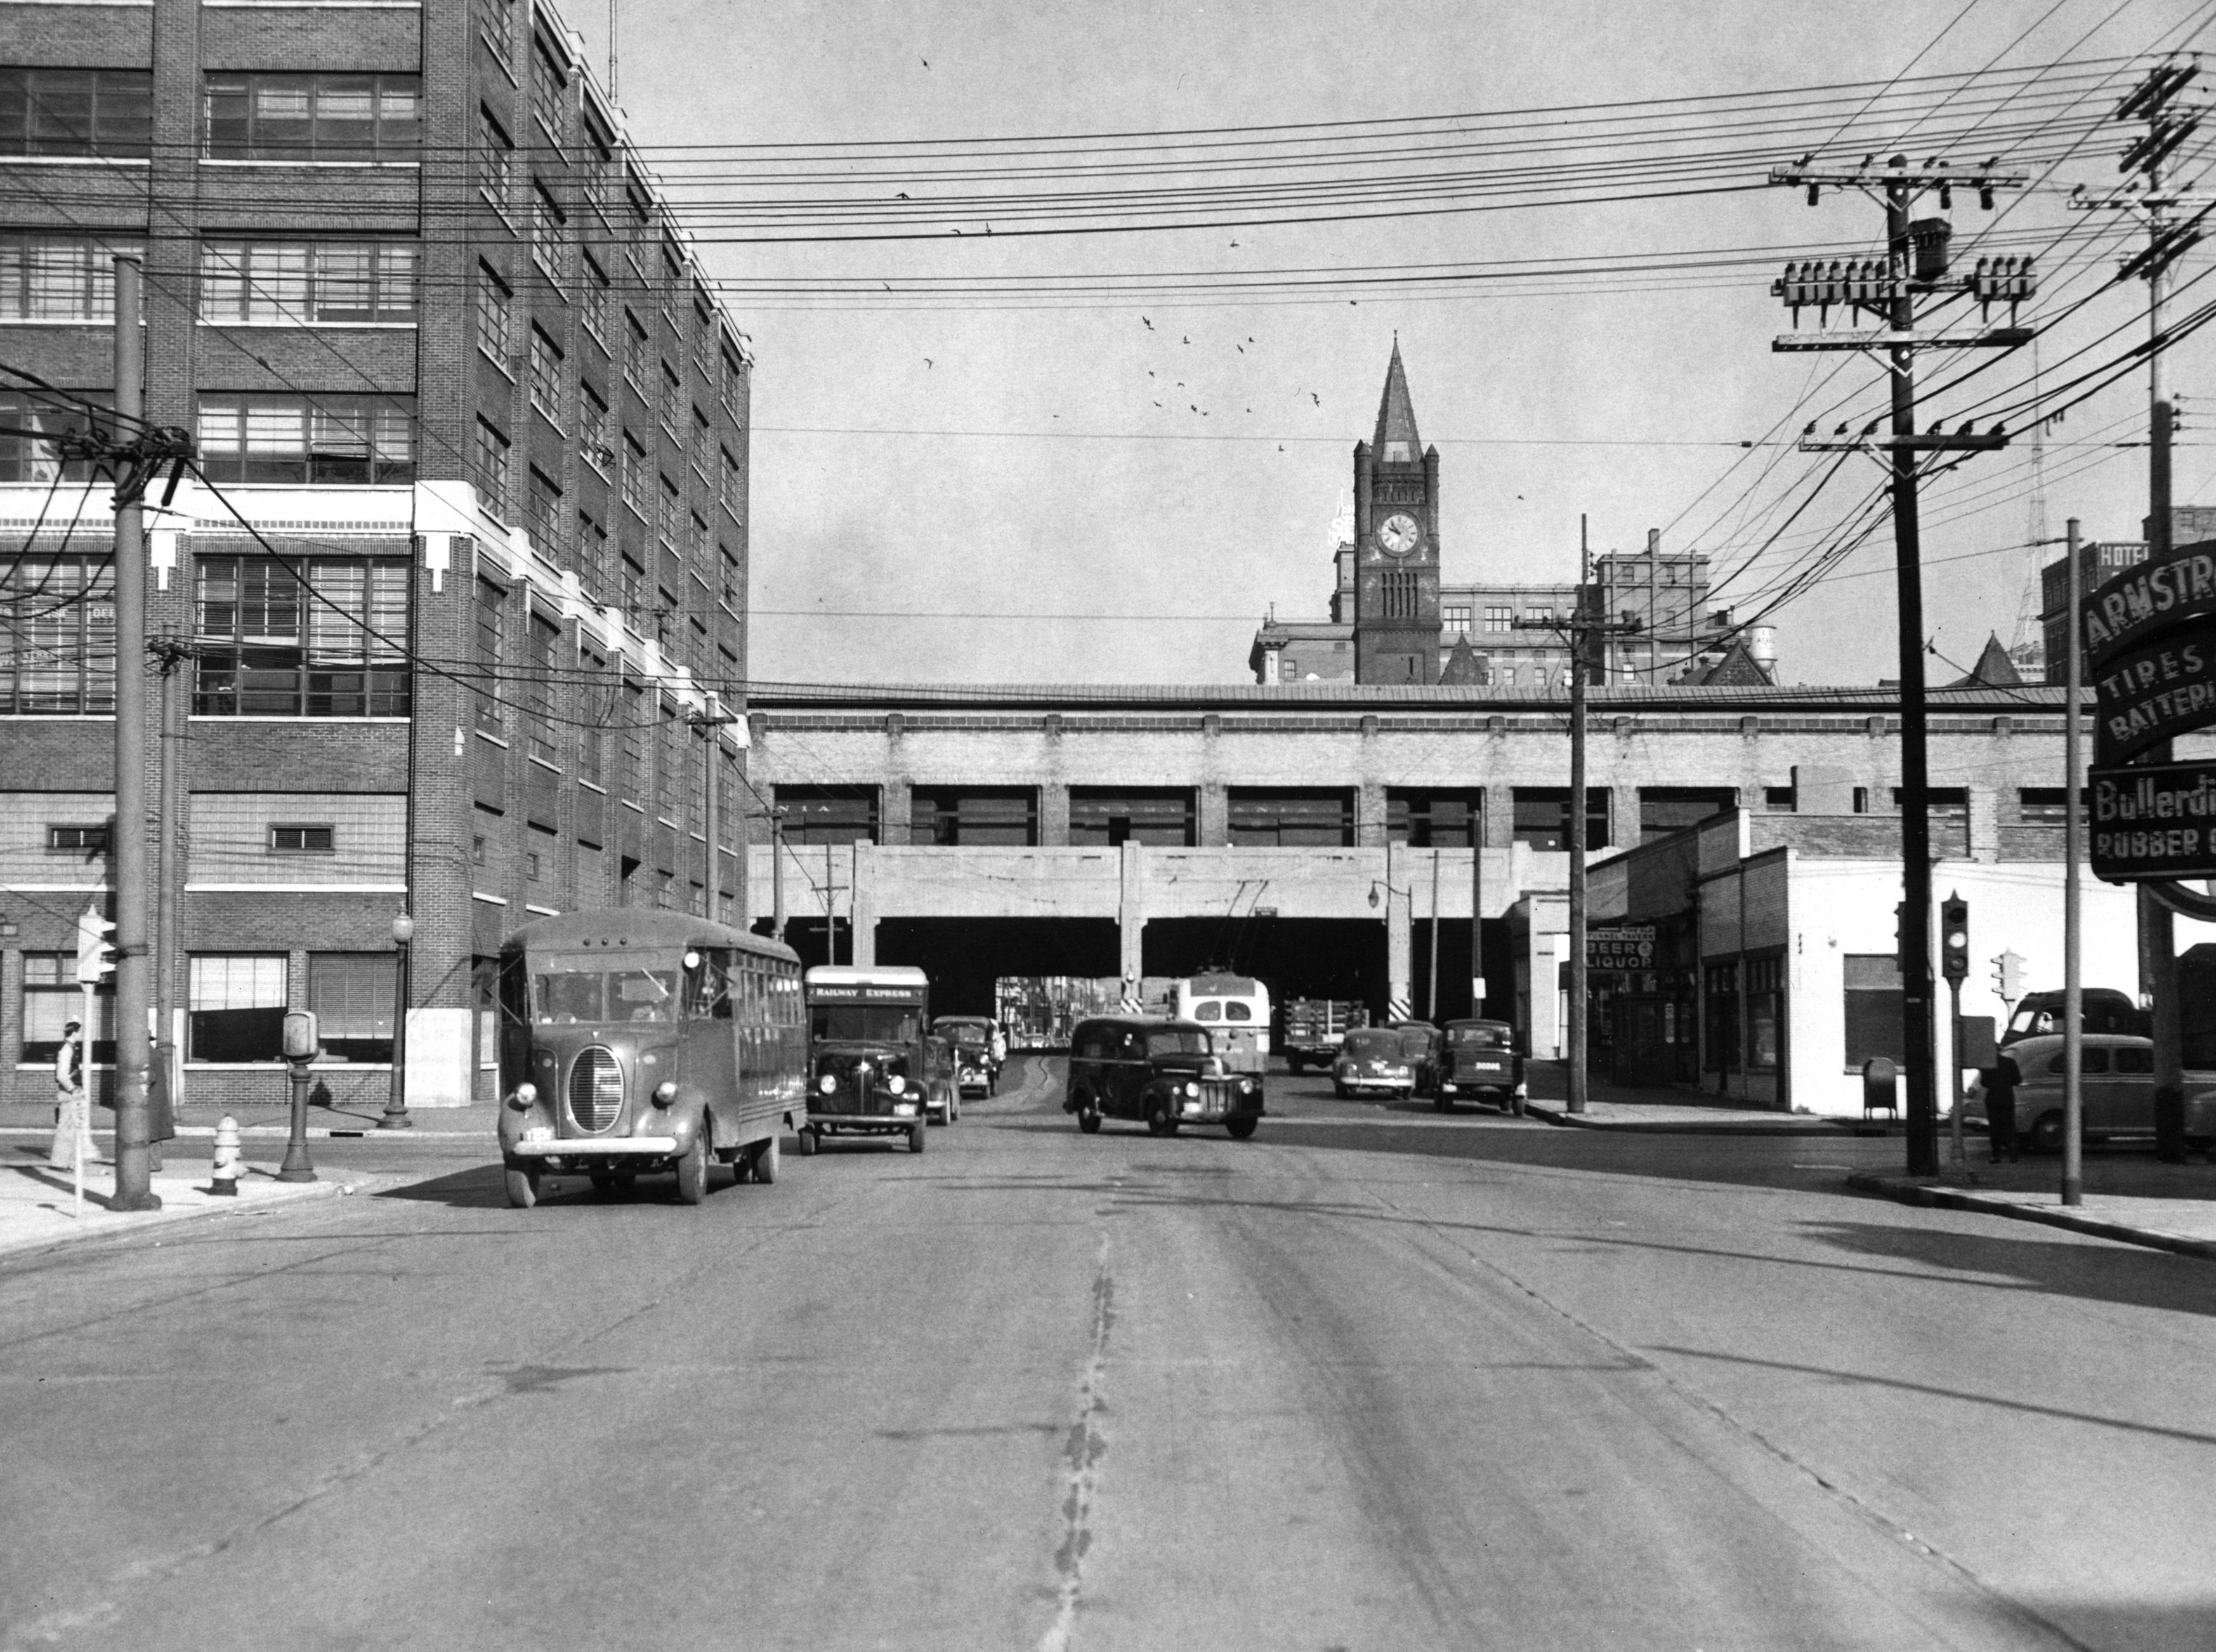 Illinois Street looking north near the intersection of South Street.  Armstrong Tires & Batteries at the far right. The railroad overpass - which you can actually see a train passing through is now covered over.  The building to the left is the Ilinois St. Post Office Station and is now where the Greyhound Bus and Amtrak terminal now stands.  Union Station clock is in the background.  November 22, 1949.